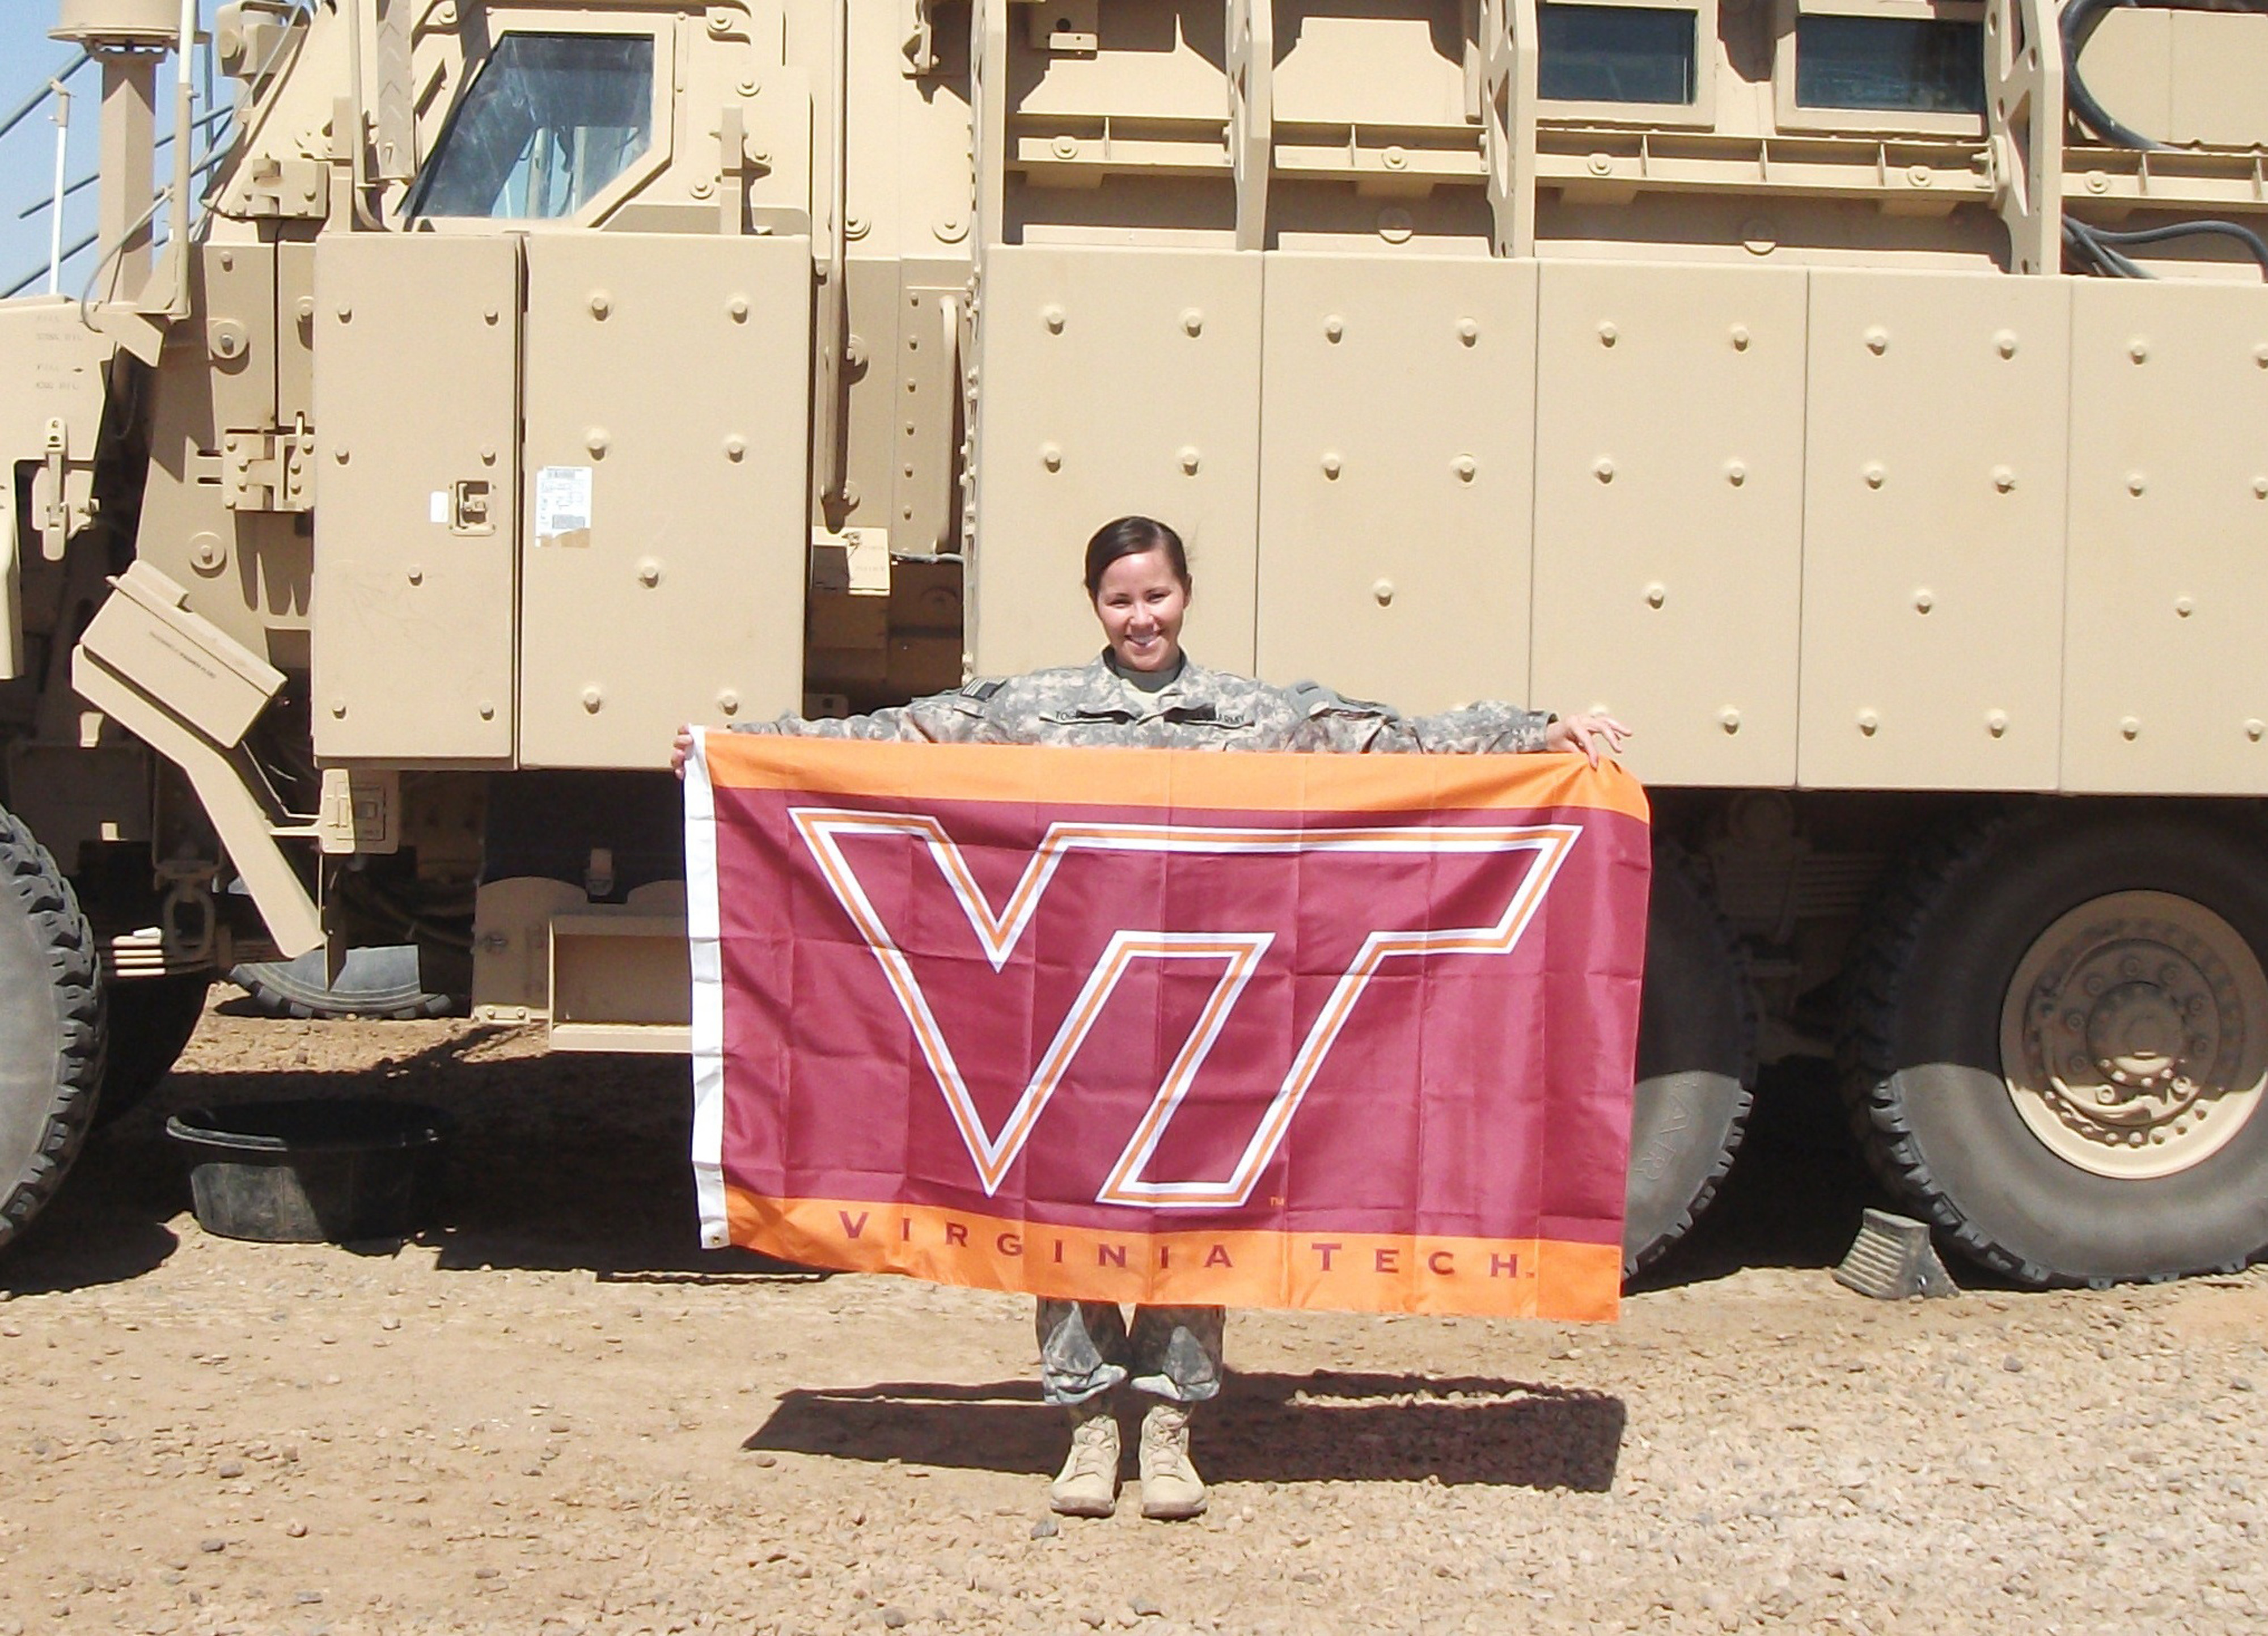 2nd Lt. Ashleigh Toguchi, U.S. Army, Virginia Tech Corps of Cadets Class of 2010 shown in Iraq